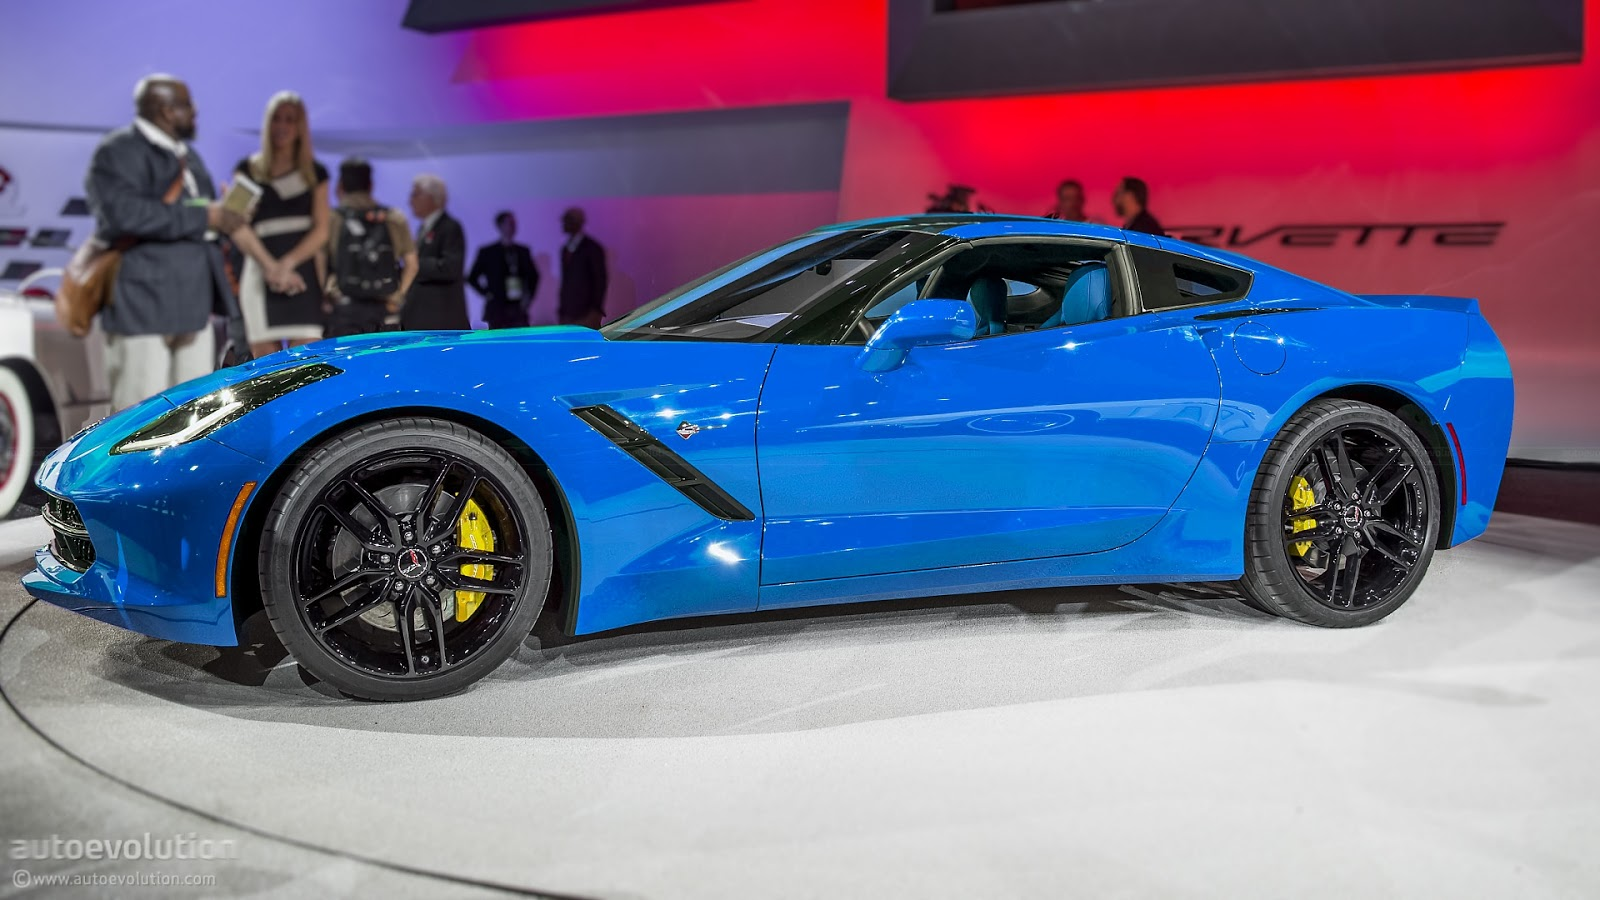 http://1.bp.blogspot.com/-JrkfRukcQ1E/UQI5qdFROSI/AAAAAAAAIMI/5-XG4e4y2MY/s1600/2014-corvette-c7-stingray-looks-great-in-blue_1.jpg